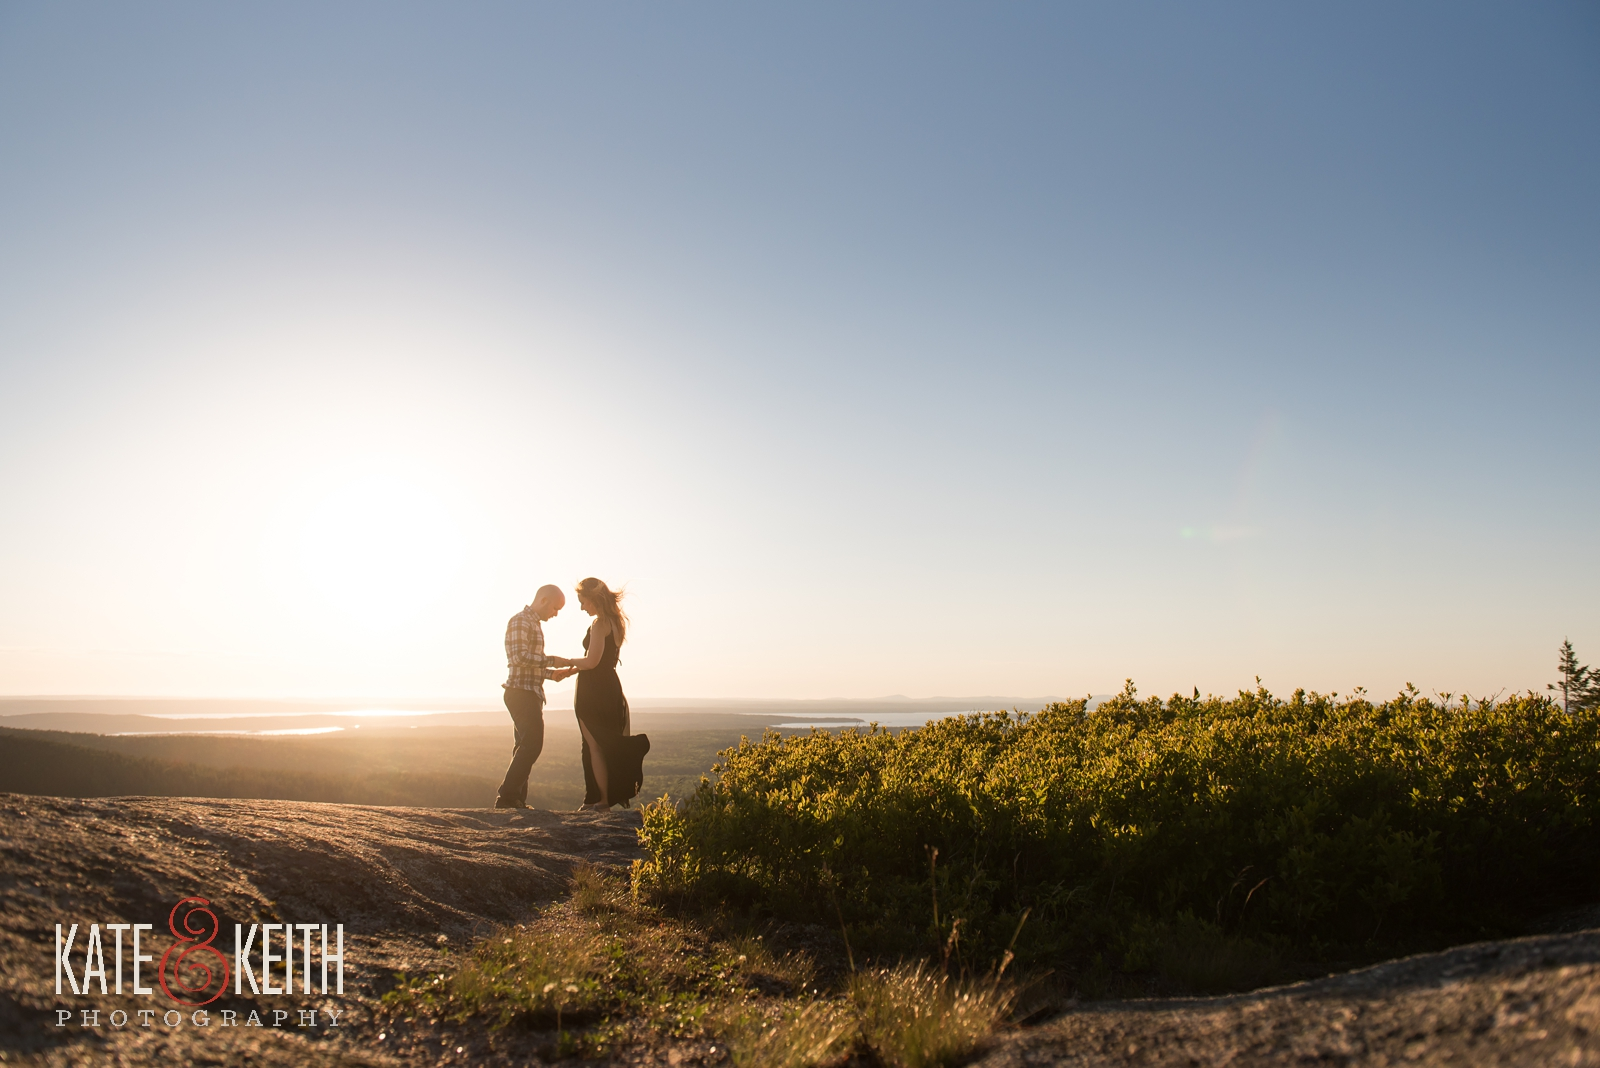 Acadia National Park, Mount Desert Island, MDI, marriage proposal, engagement, engaged, wedding proposal, sunset, summer, summertime, engagement photos